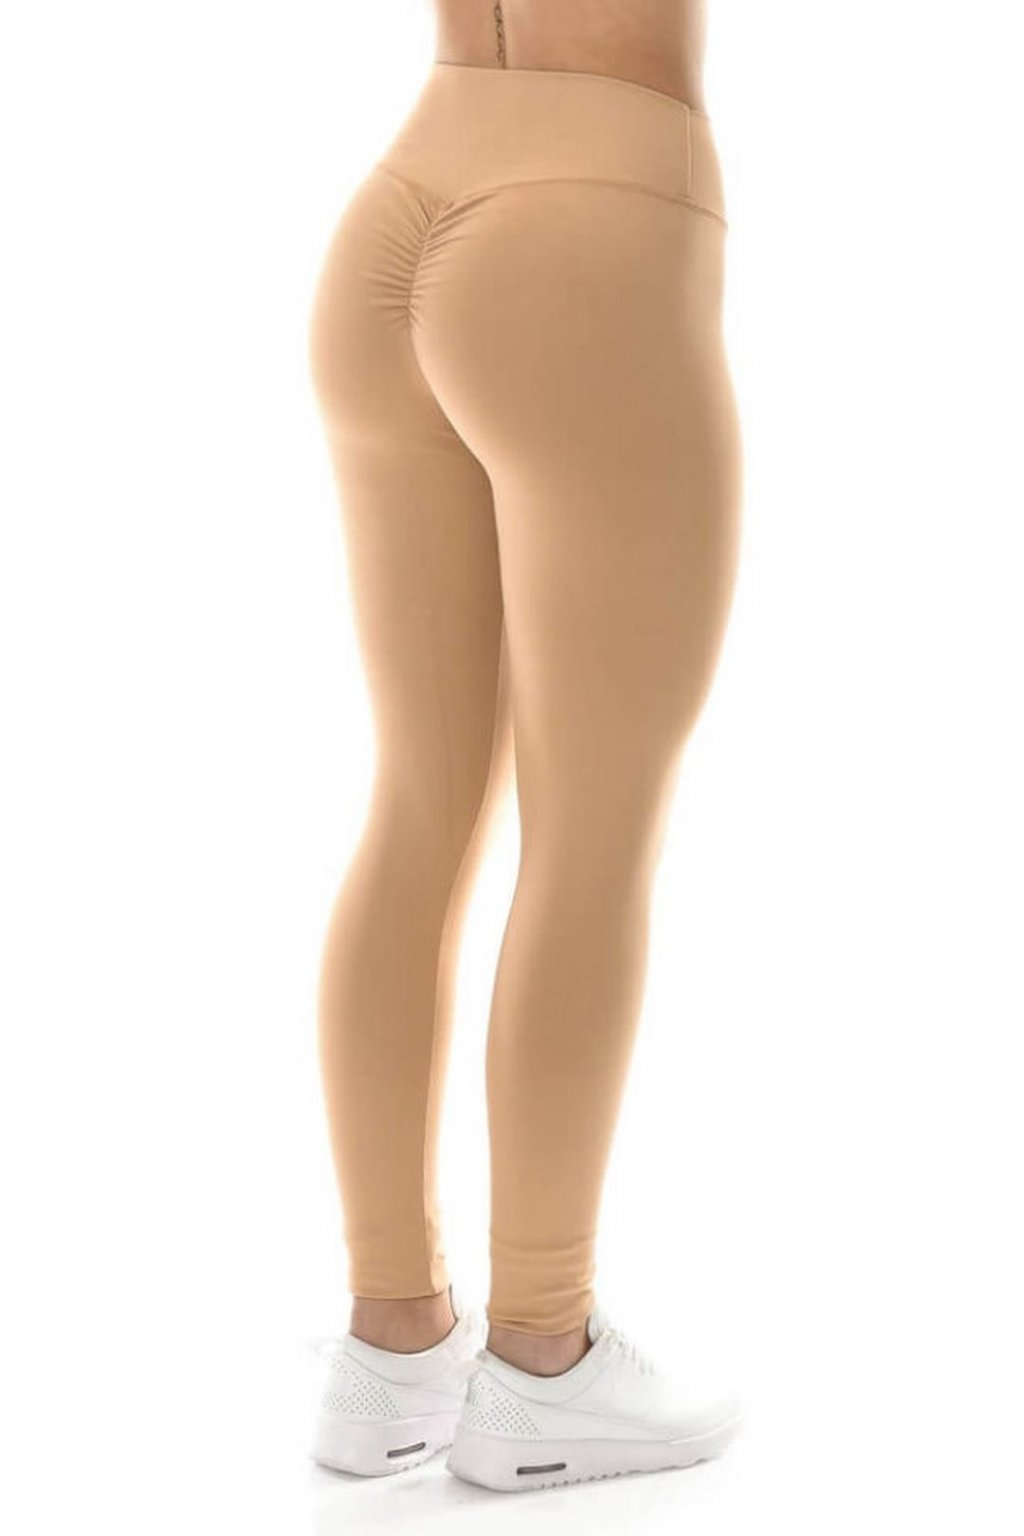 Apricot Leggings Yoga Pants Ruched Butt Running Fitness Gym Workout Tights Leggings 630x945